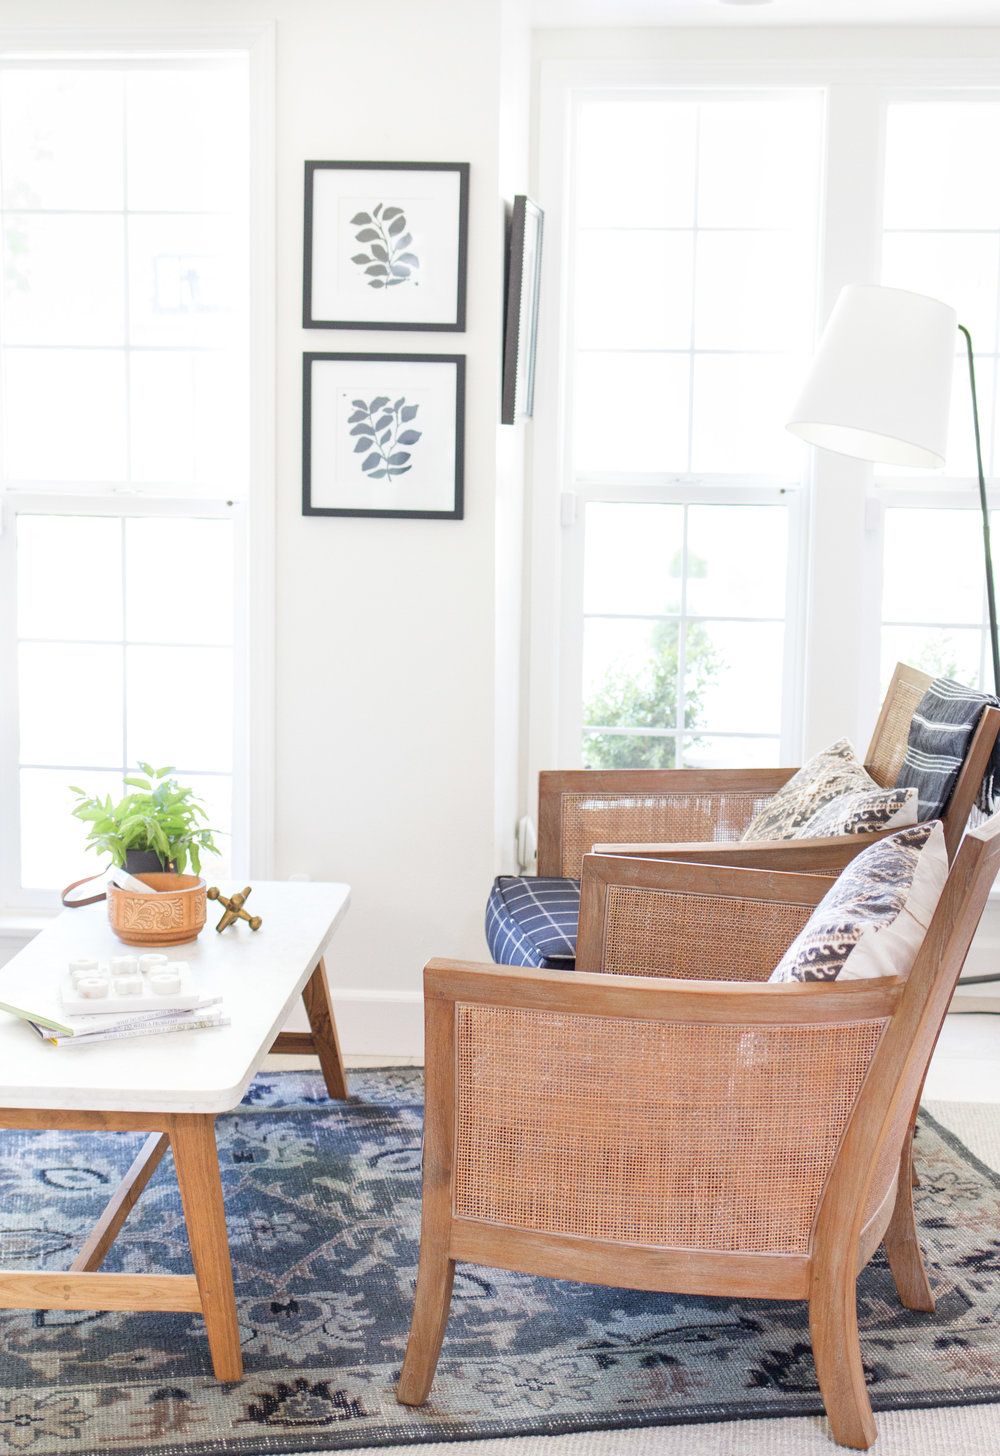 family room with woven chairs